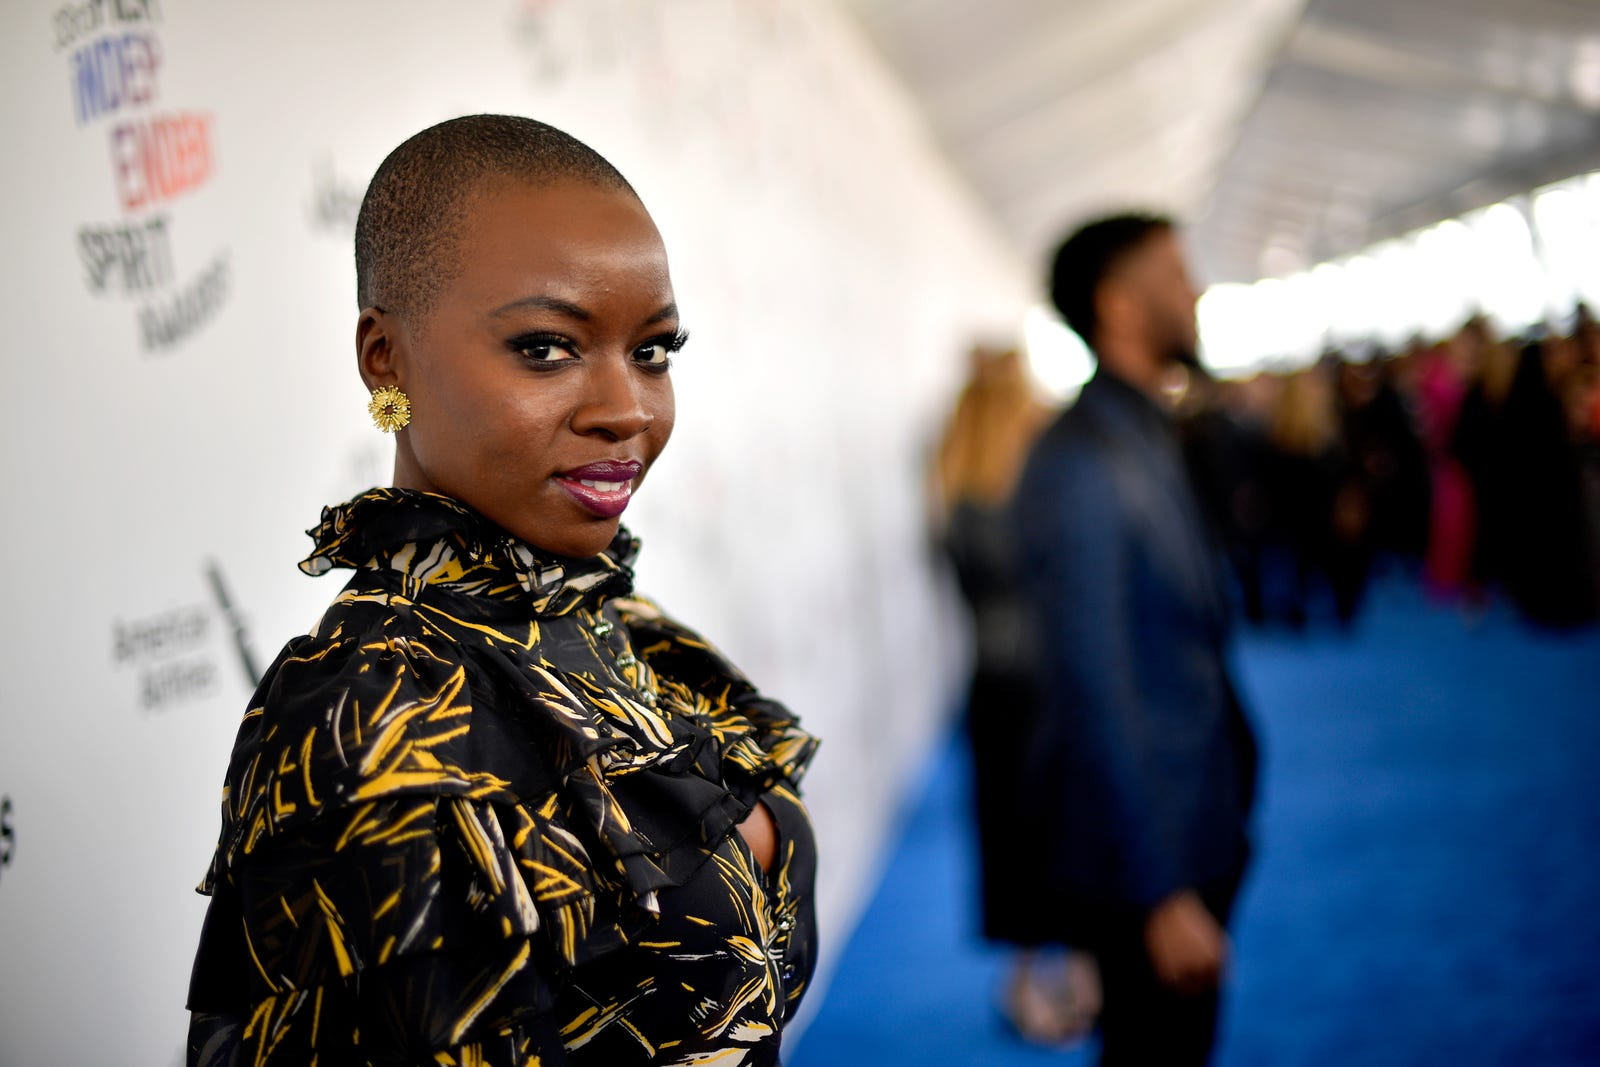 Danai Gurira gives us her trademark gaze. (Matt Winkelmeyer/Getty Images)